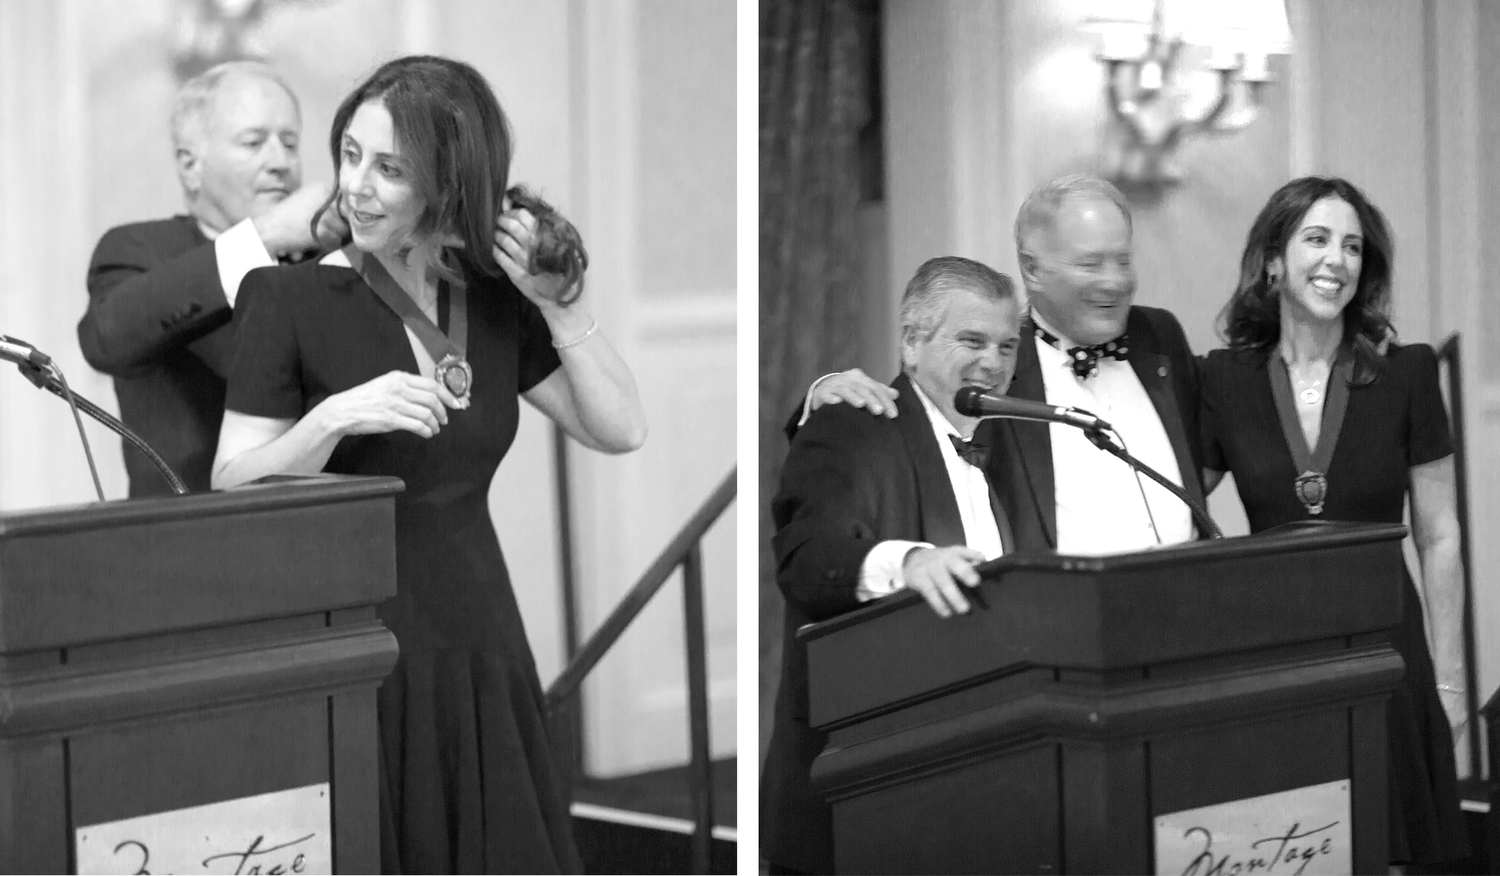 LEFT: Past President Scott Deluise putting on the Current President Medallion on Diane Swerling. RIGHT: Brian Goodman, Esq (Counsel to NAPIA) officially announces Diane Swerling as acting President for 2016.